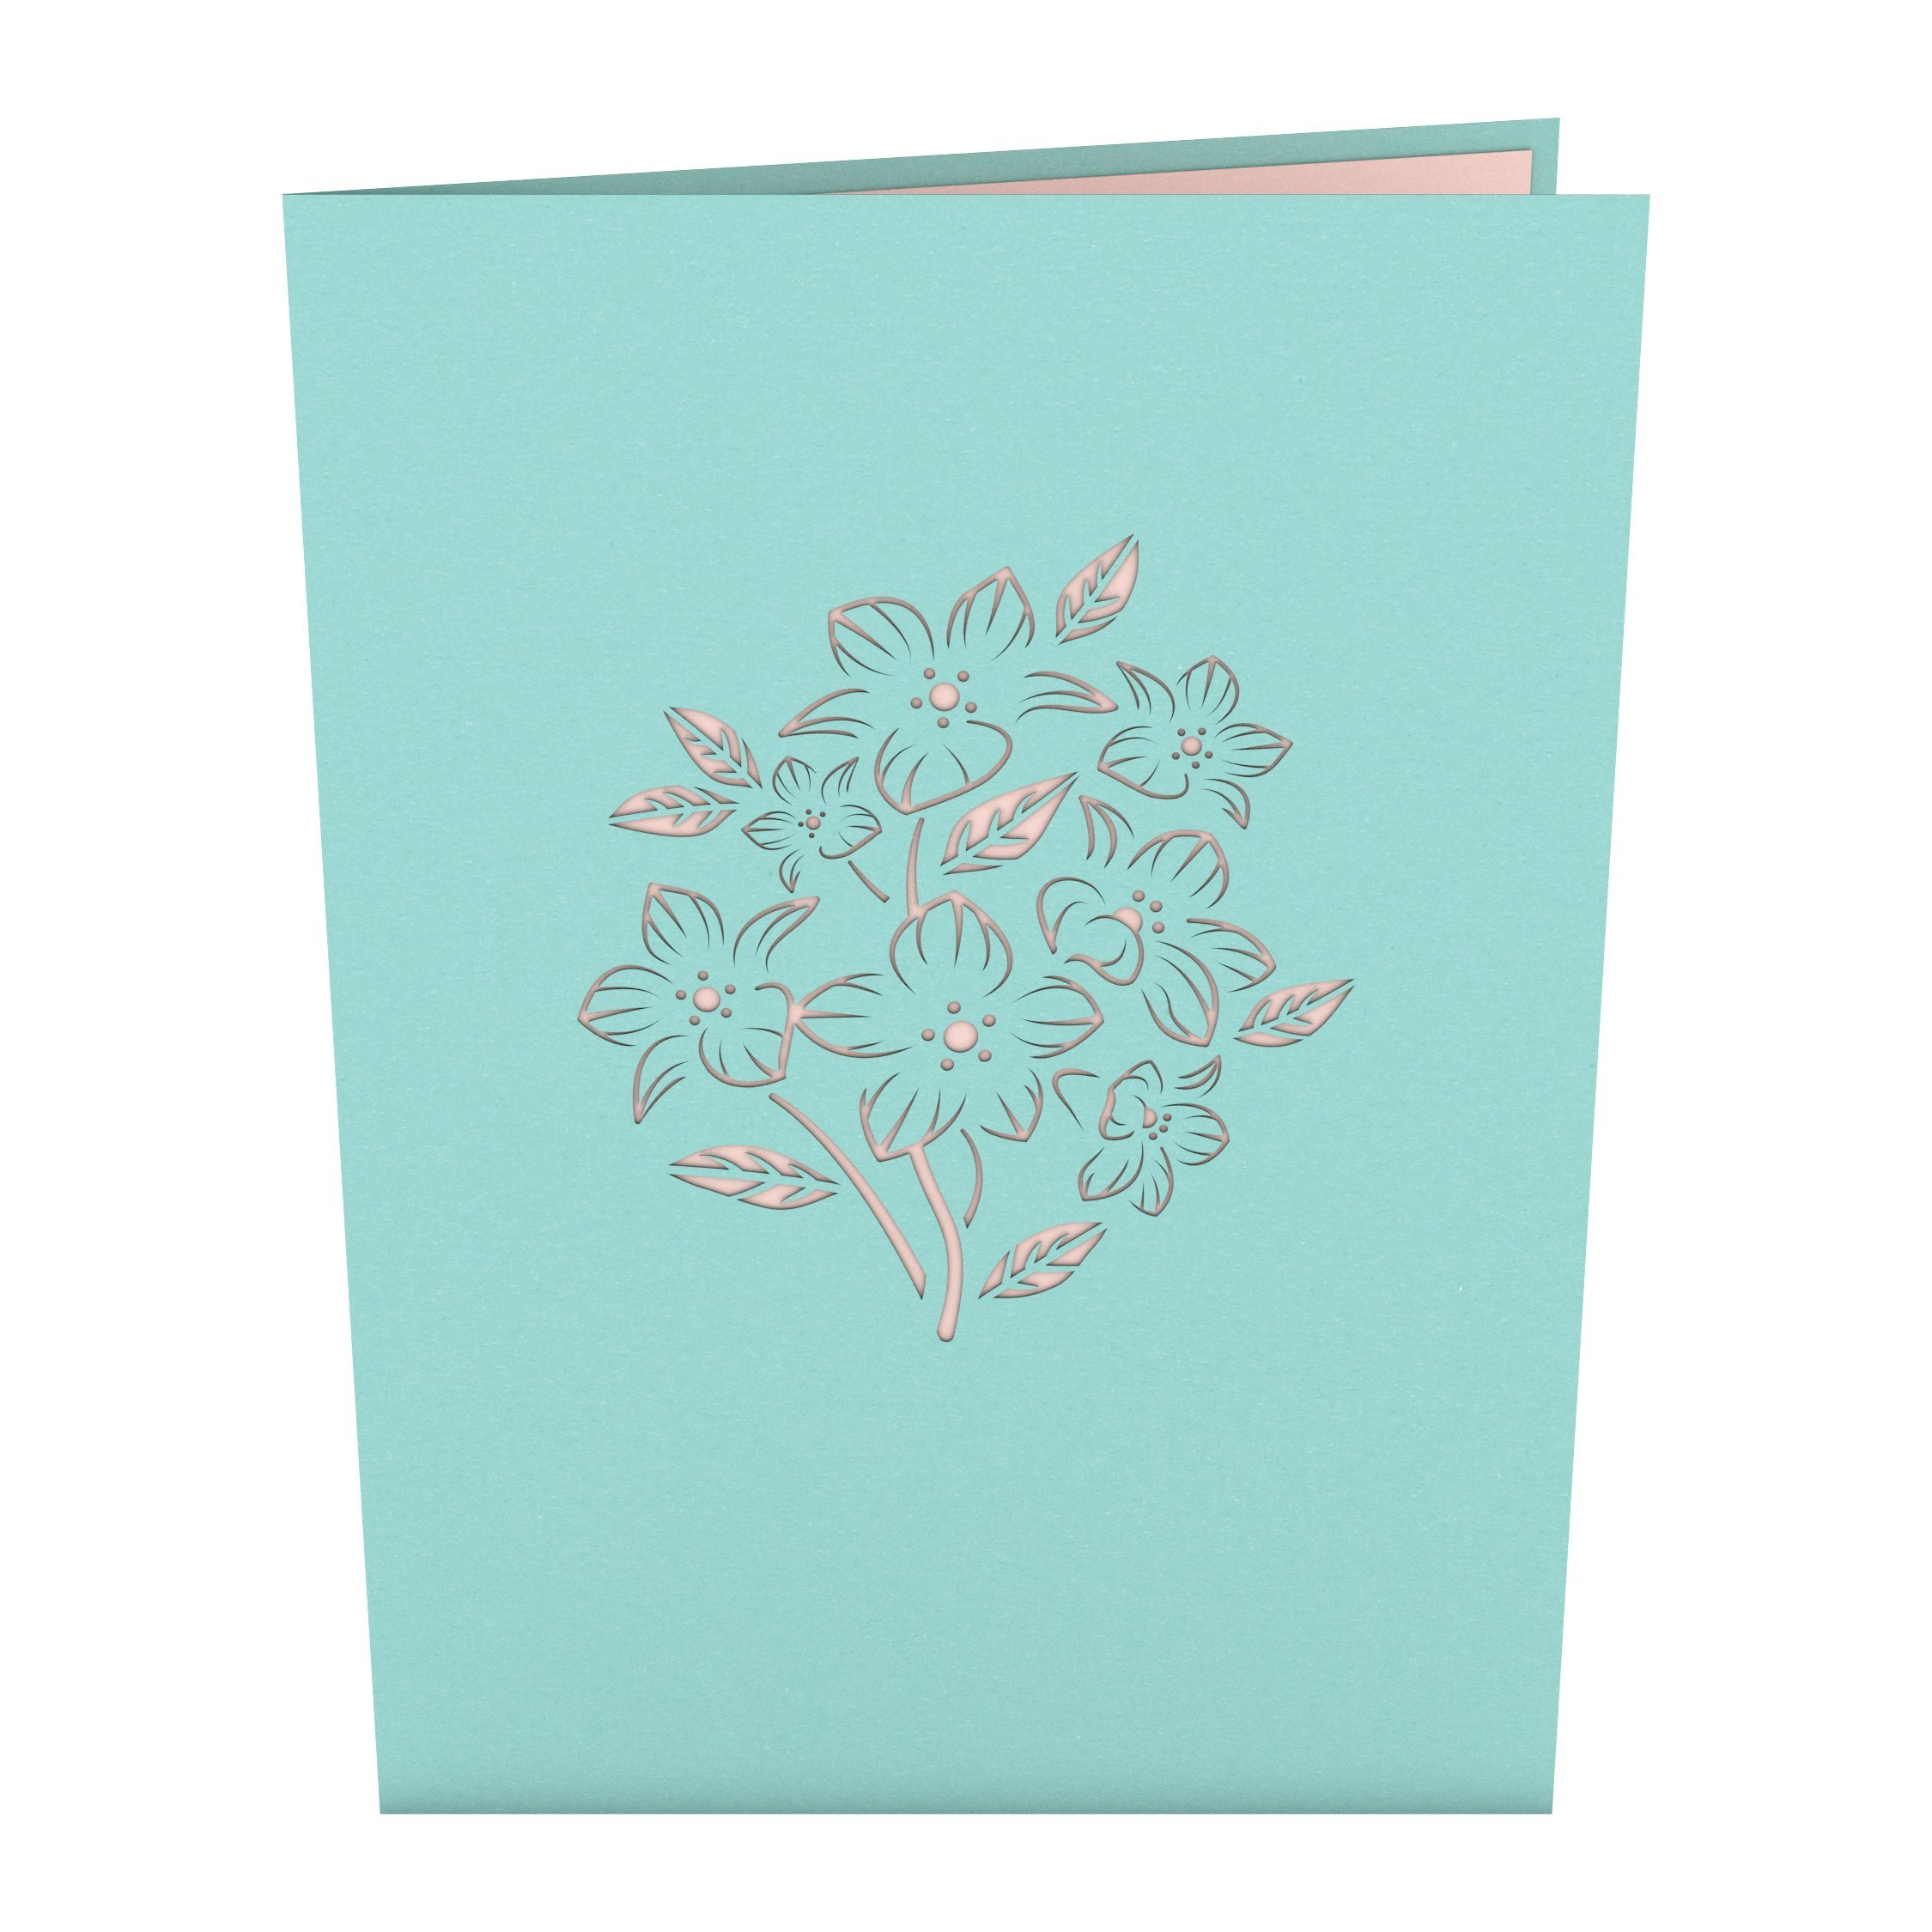 Lovepop Floral Bouquet Blue Pop Up Card 3d Card Mothers Day Card